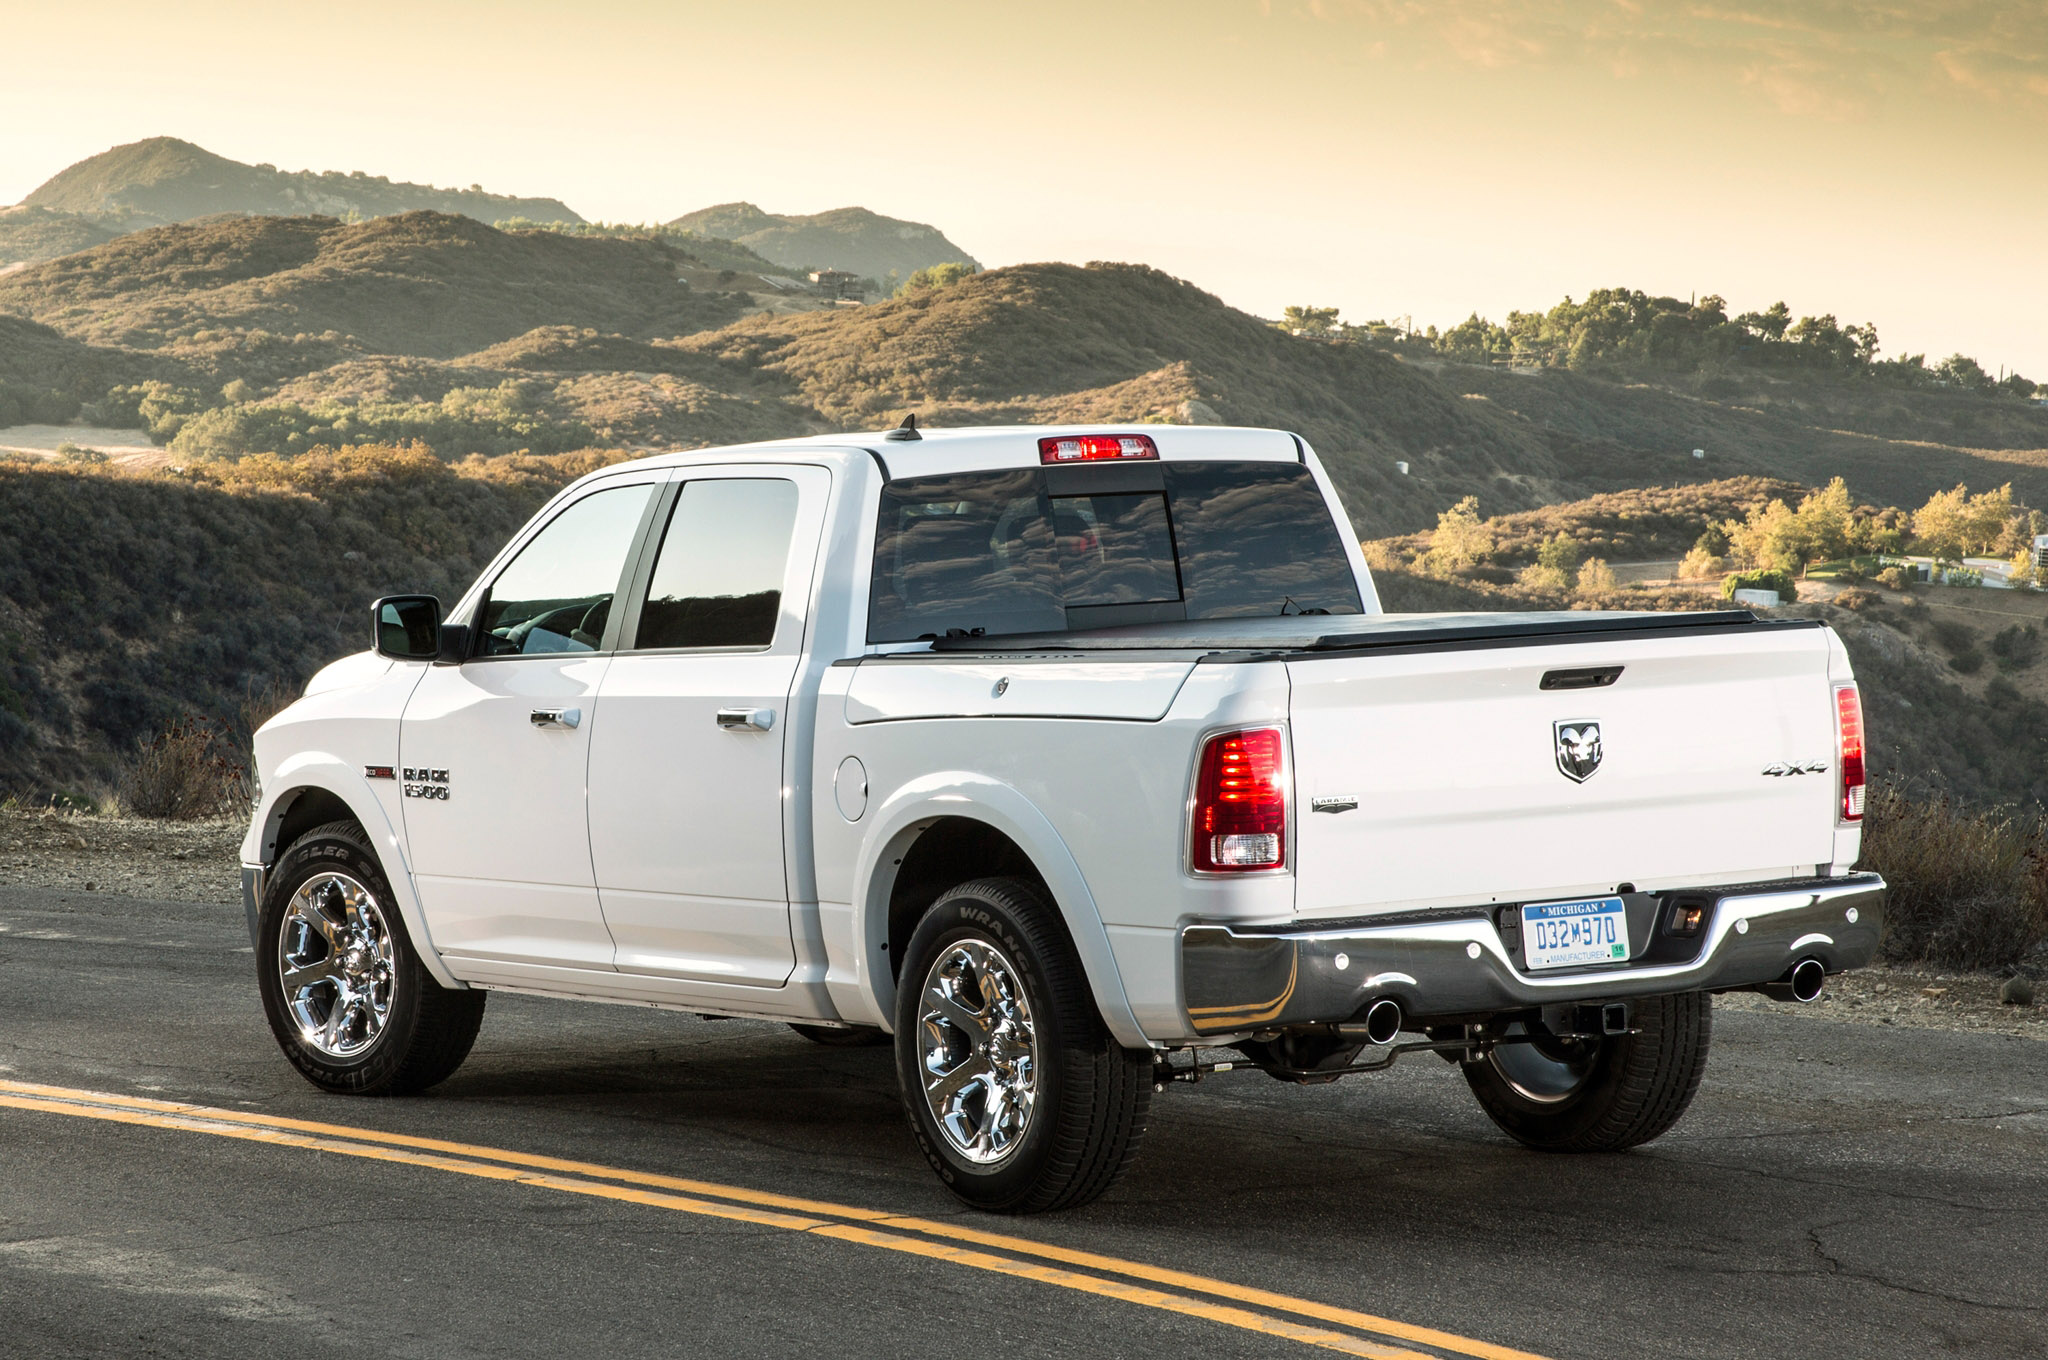 2014 dodge ram 1500 ecodiesel records best fuel economy rating. Black Bedroom Furniture Sets. Home Design Ideas